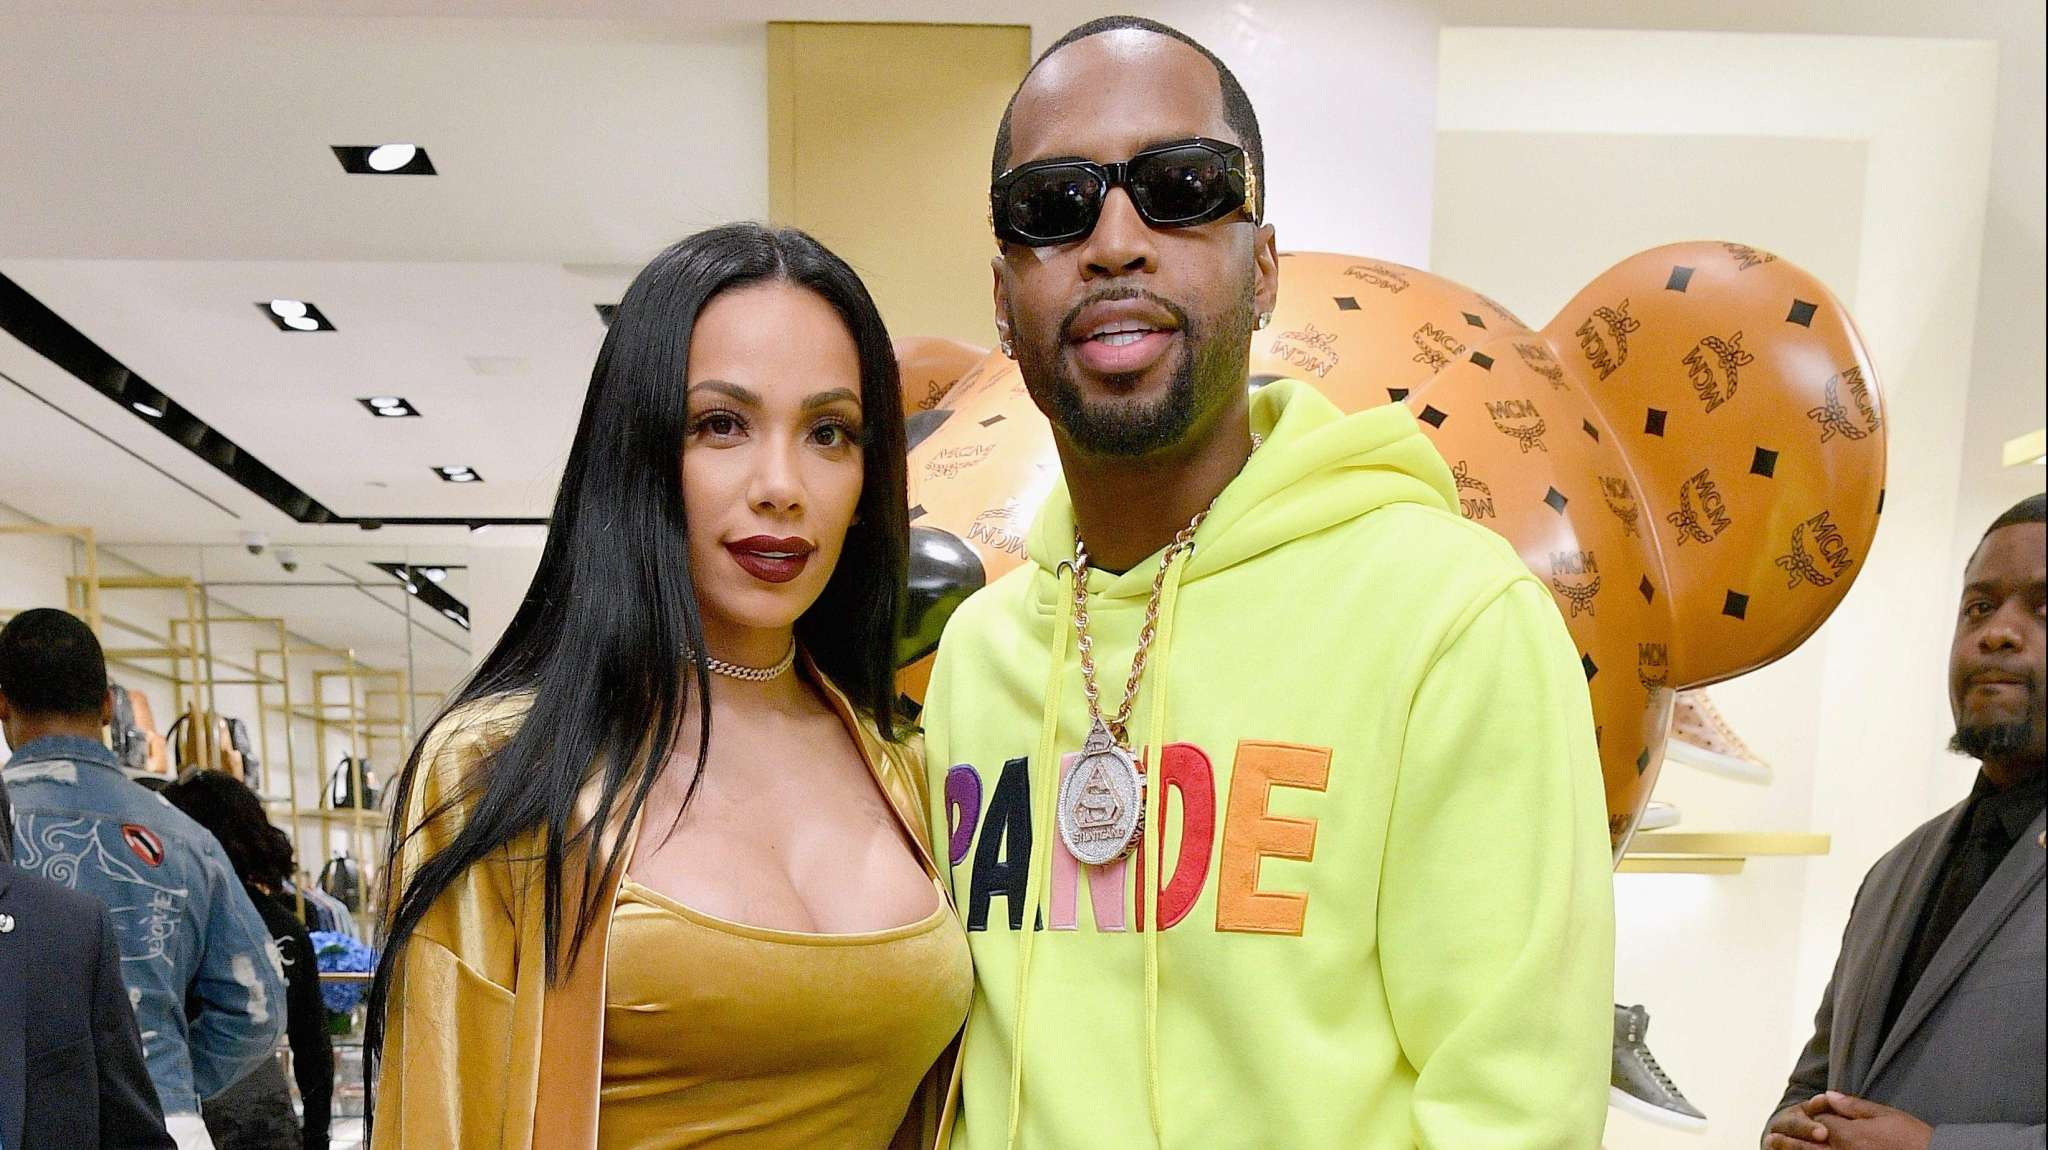 SAFAREE SAMUELS ACCUSES ERICA MENA OF DESTROYING ITS SNEAKERS AND BICYCLES